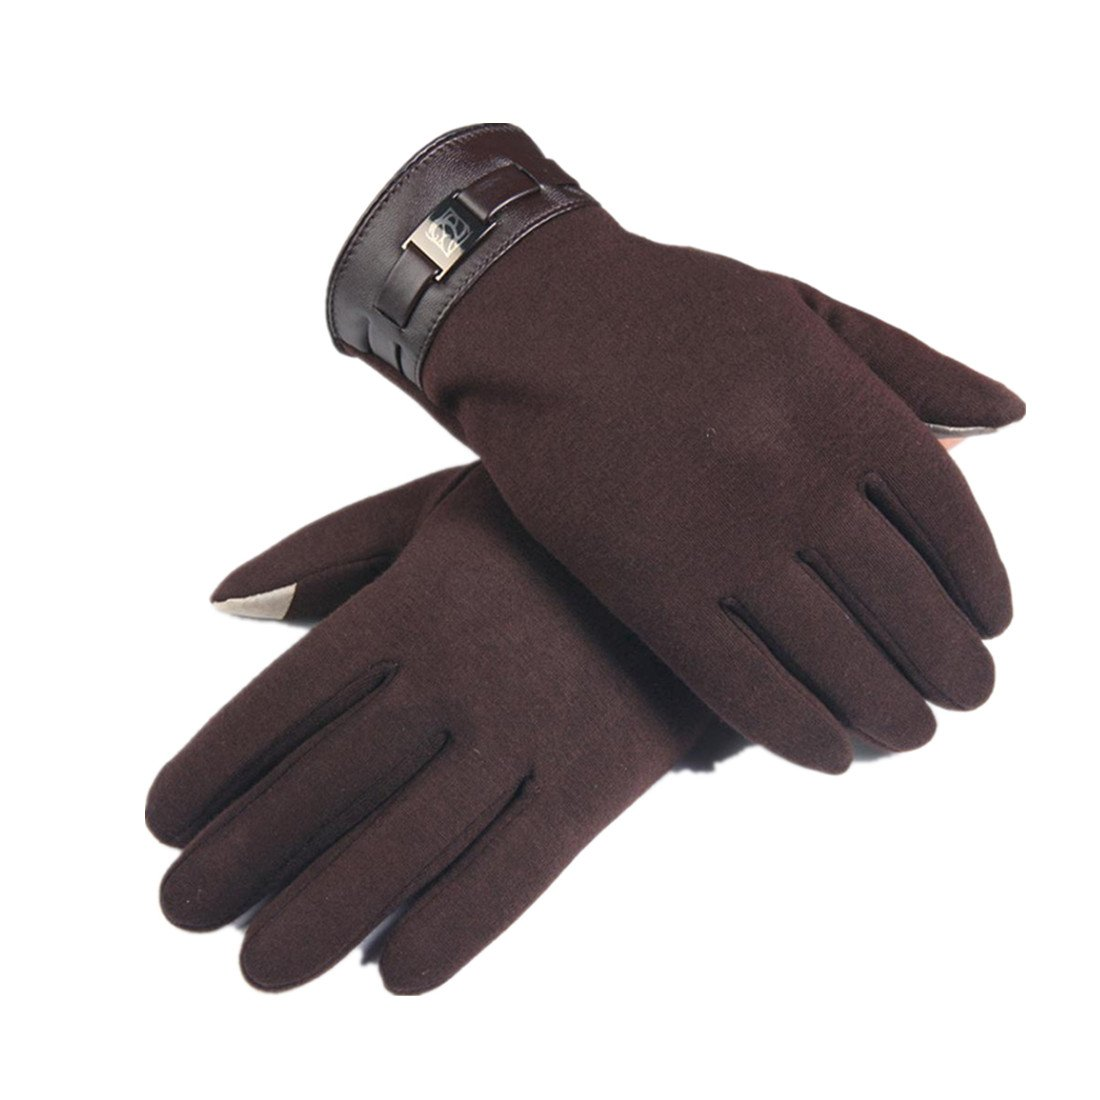 Gloves,toraway Winter Mens Full Finger Smartphone Touch Screen Cashmere Gloves (Brown)